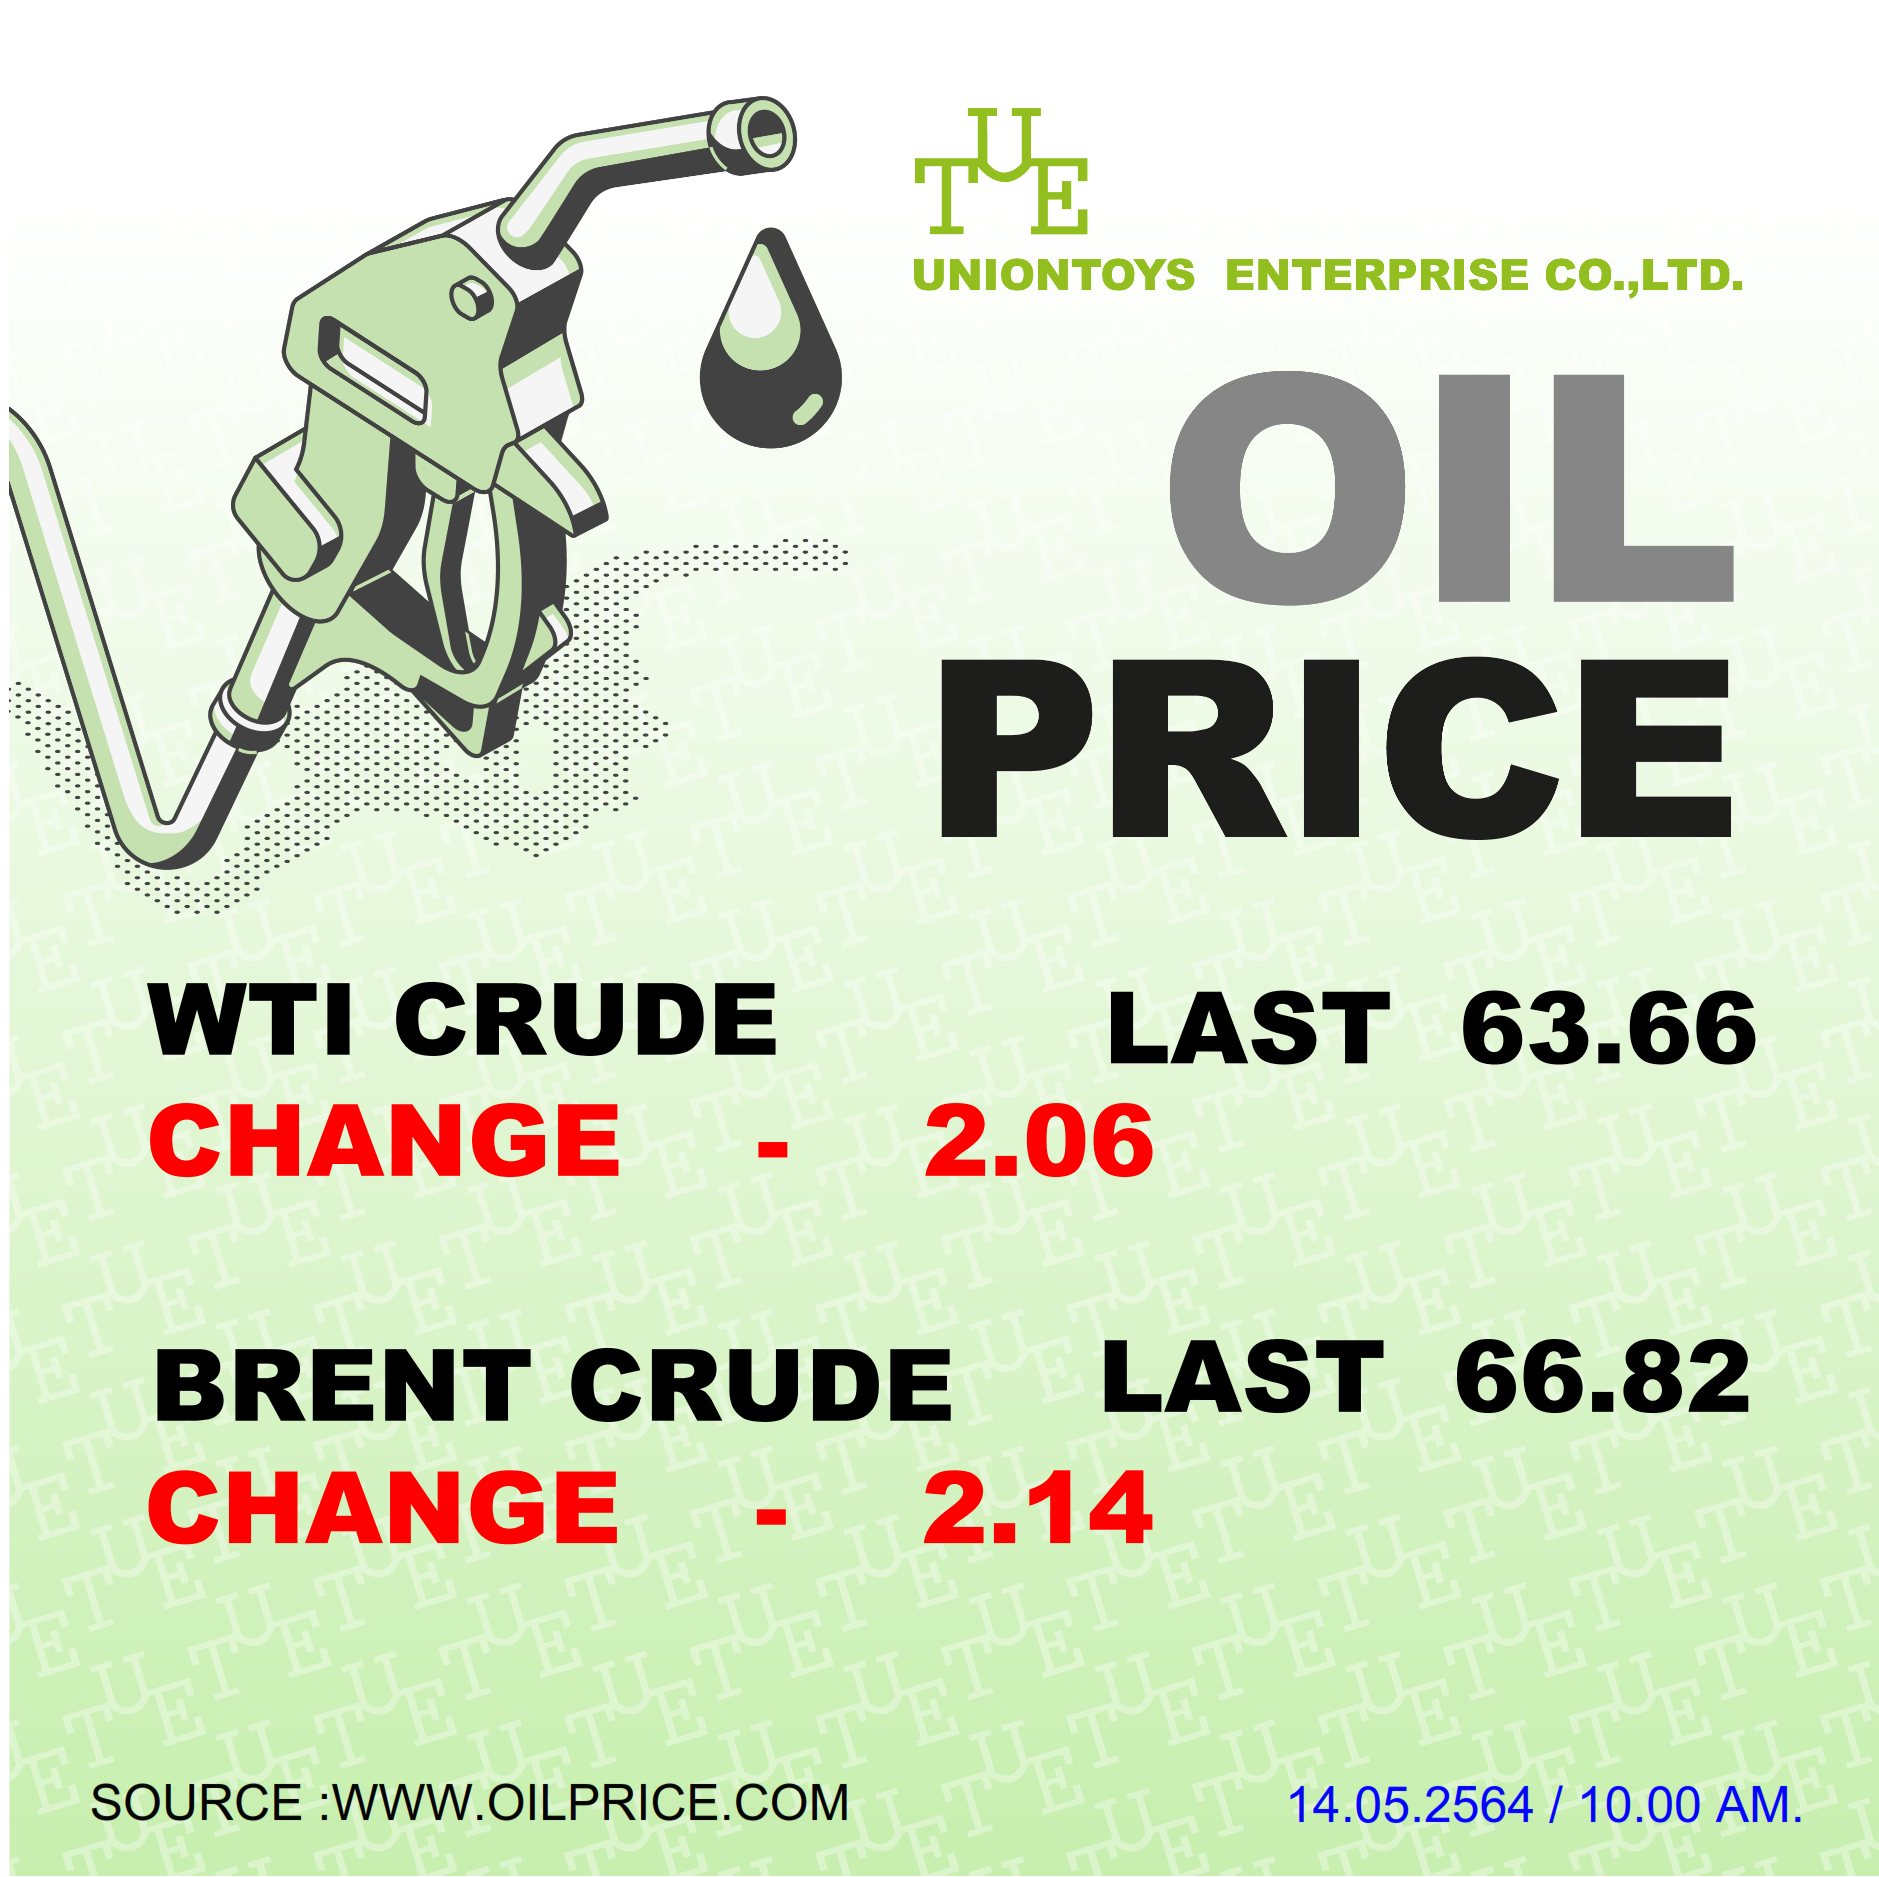 Uniontoys Oil Price Update - 16-05-2021